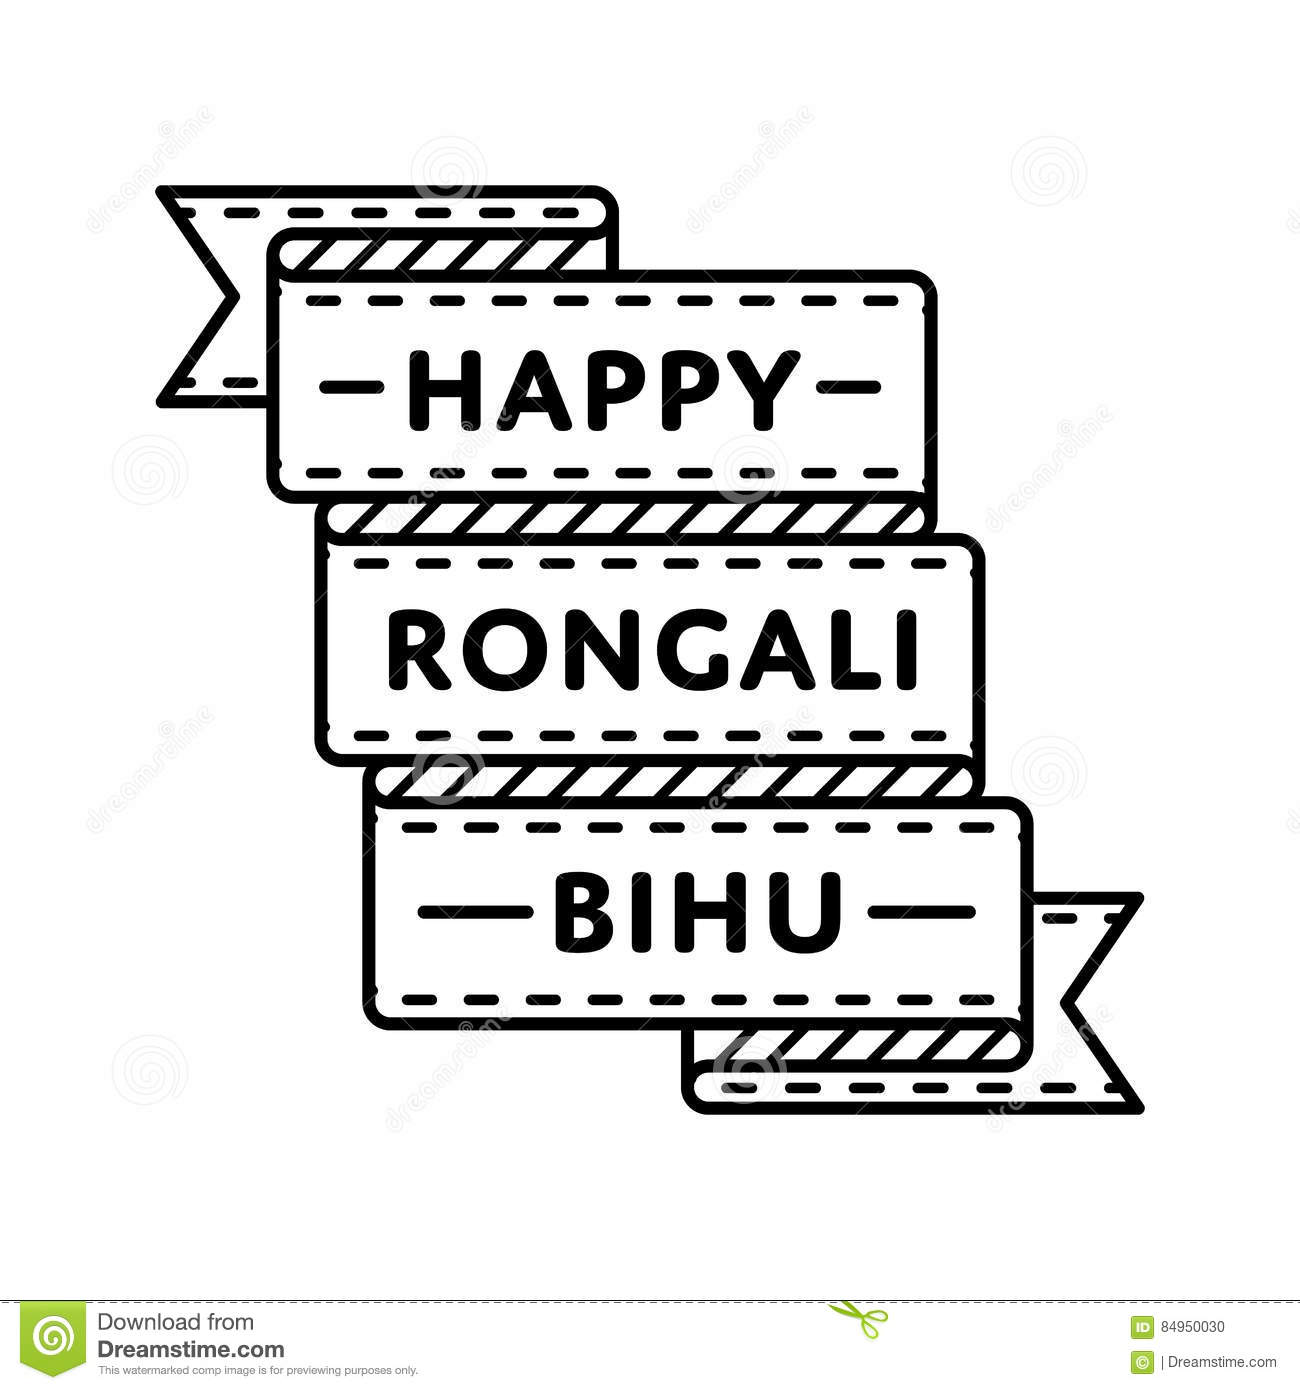 Happy Rongali Bihu Greeting Emblem Stock Vector Illustration Of